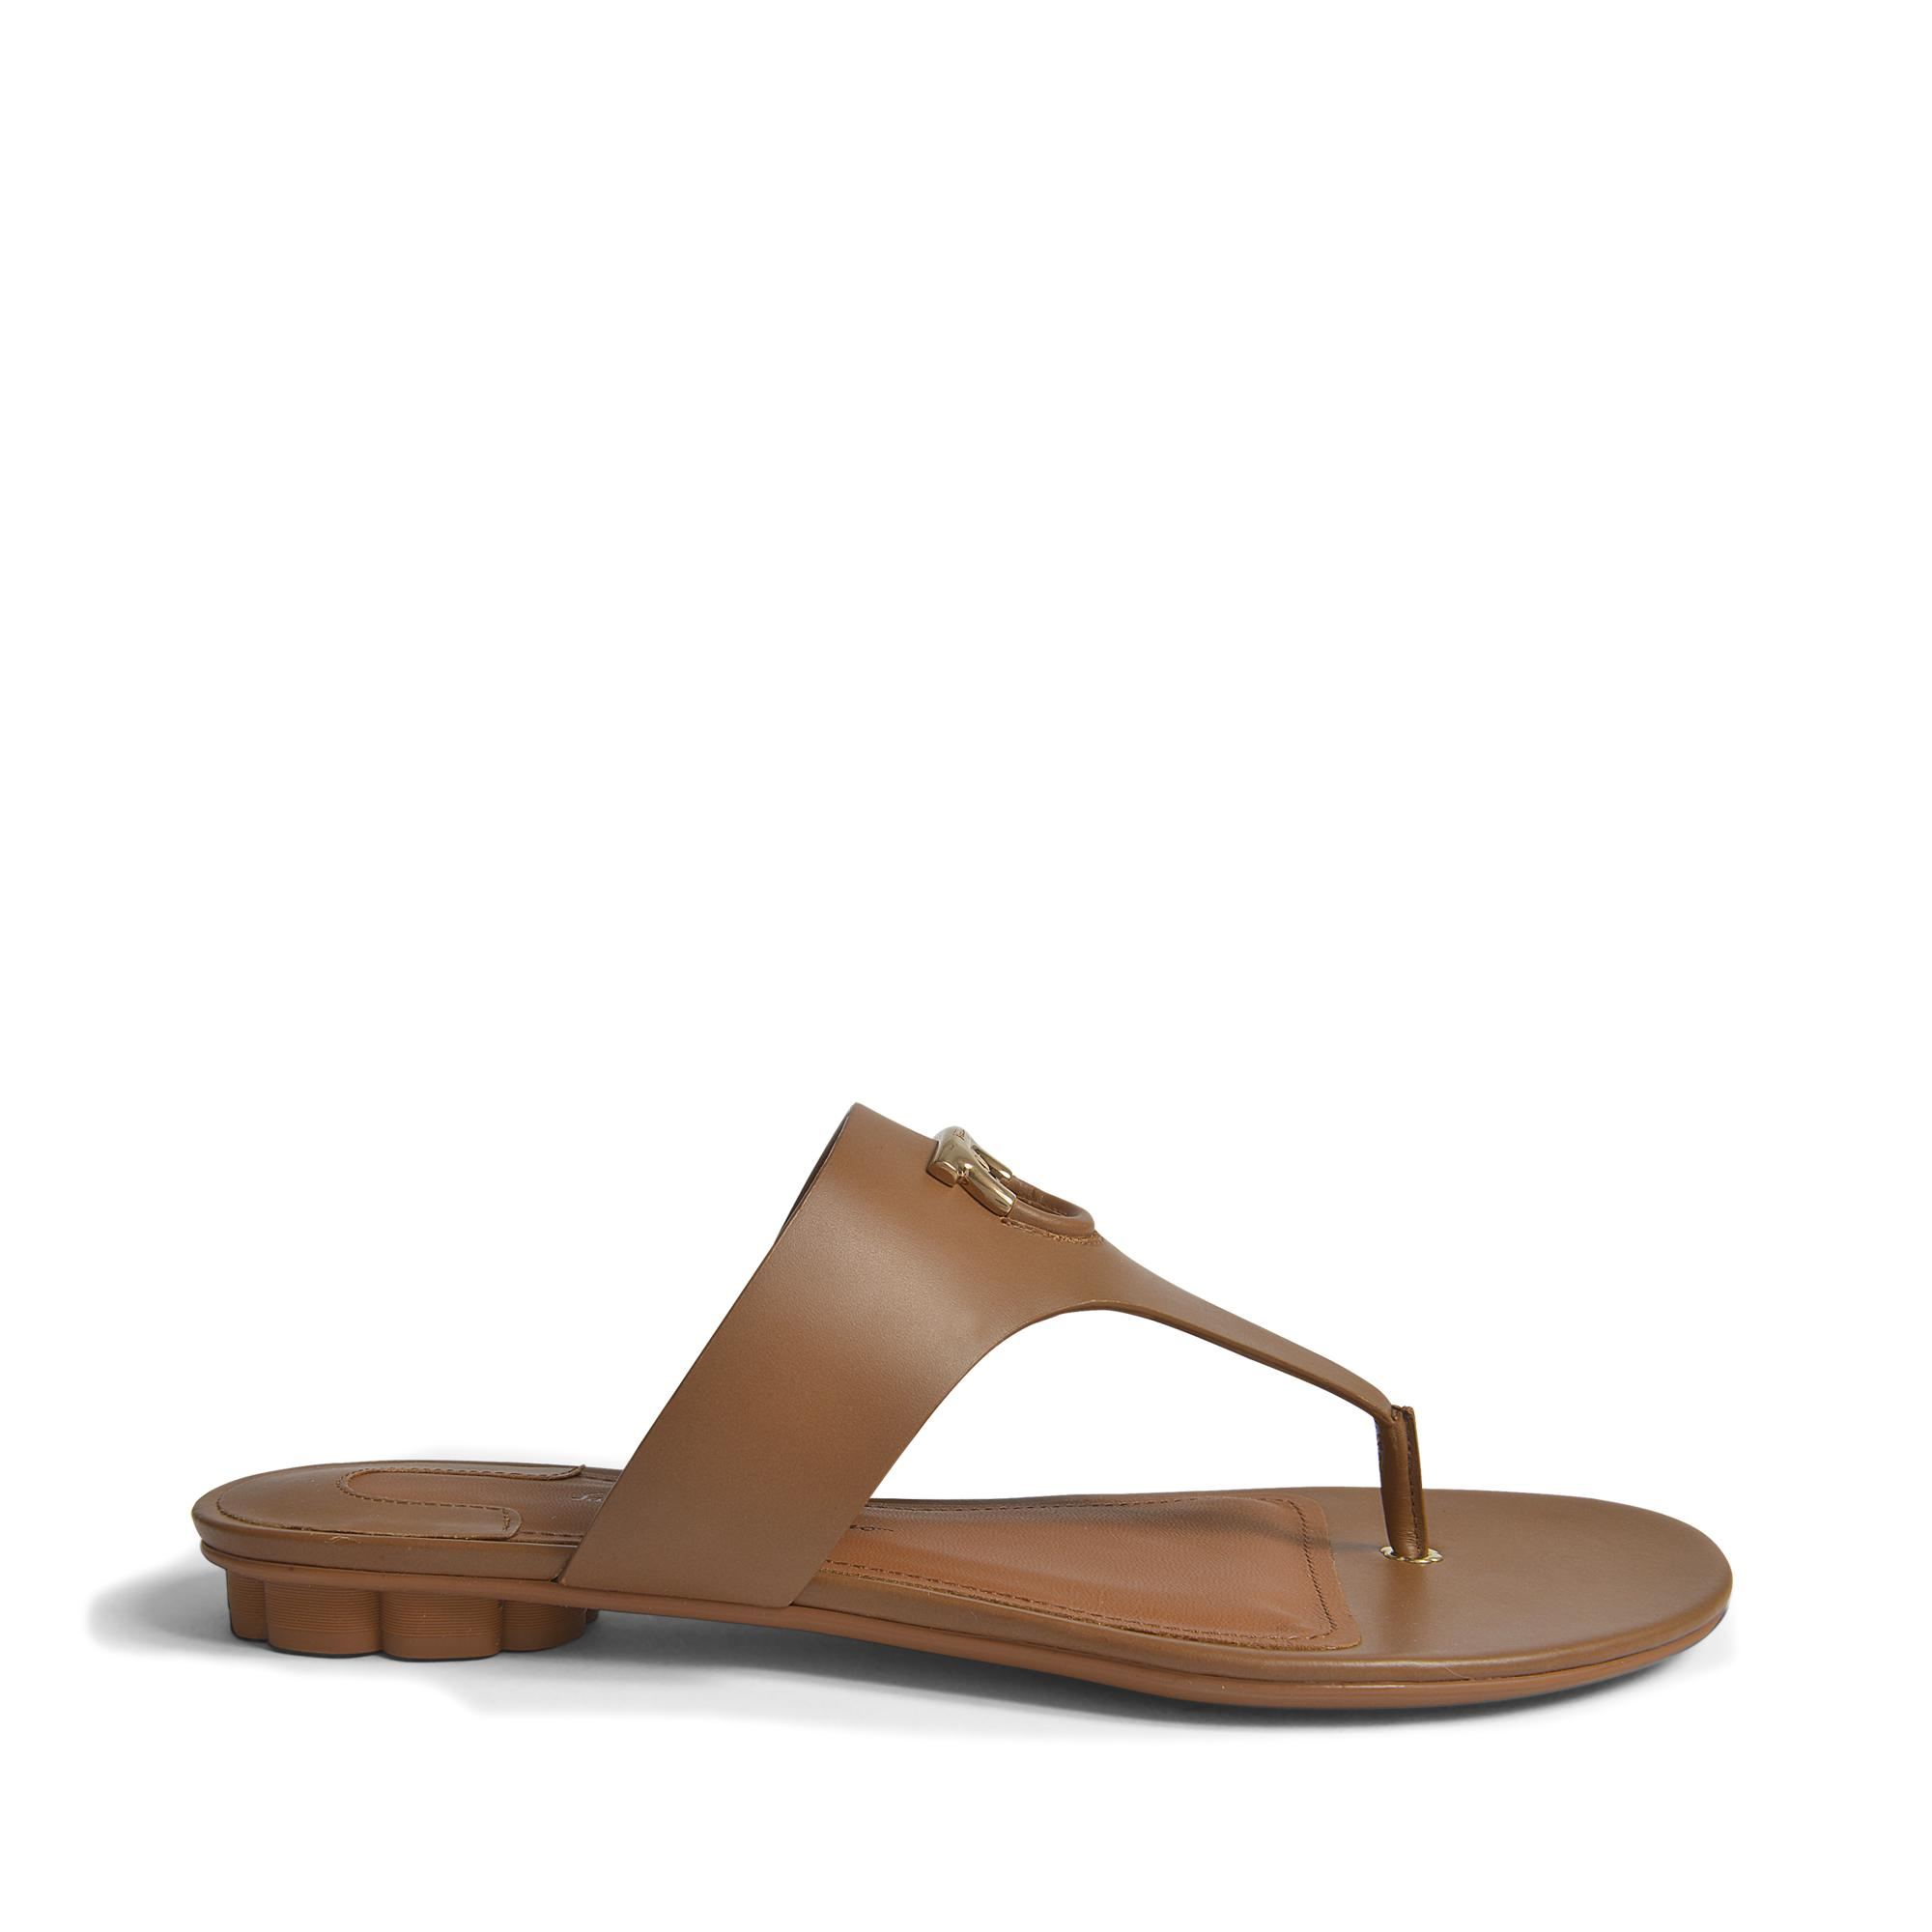 Enfola Thong Shoes in Medium Brown Alexand Calf Leather Salvatore Ferragamo